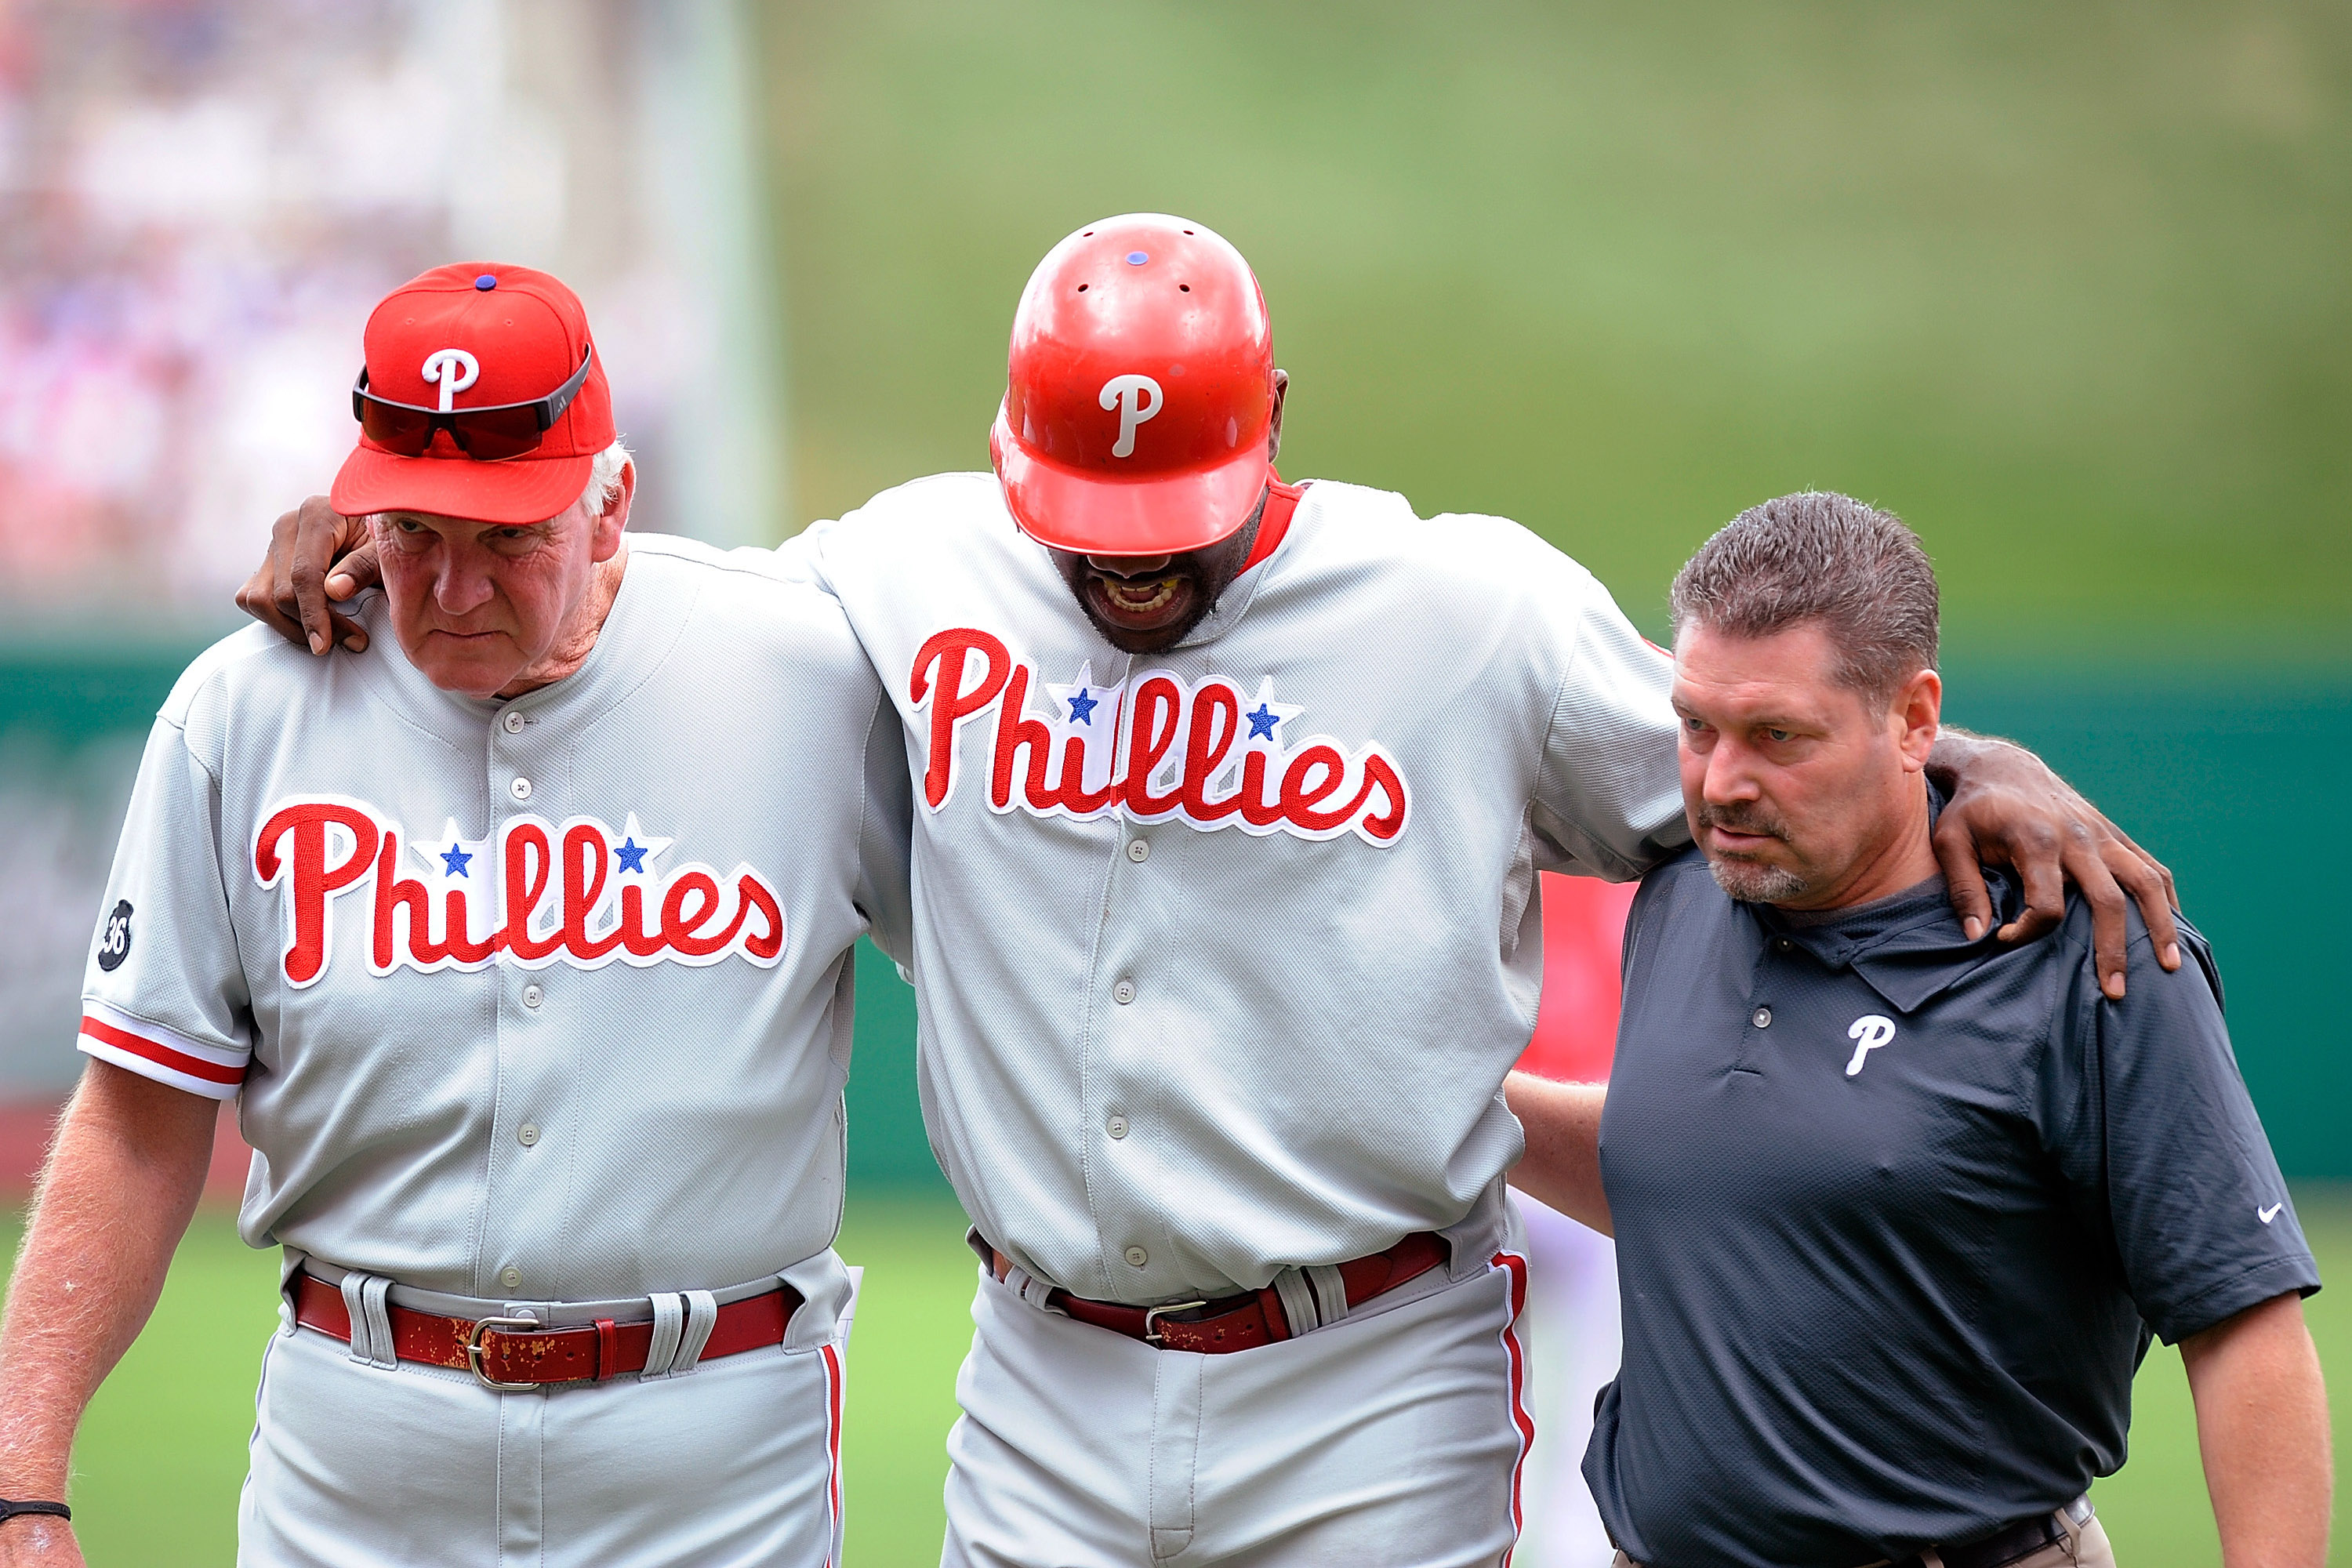 WASHINGTON - AUGUST 01:  Ryan Howard #6 of the Philadelphia Phillies is helped off the field by manager Charlie Manuel and a Philadelphia trainer after injuring his ankle during the first inning against the Washington Nationals at Nationals Park on August